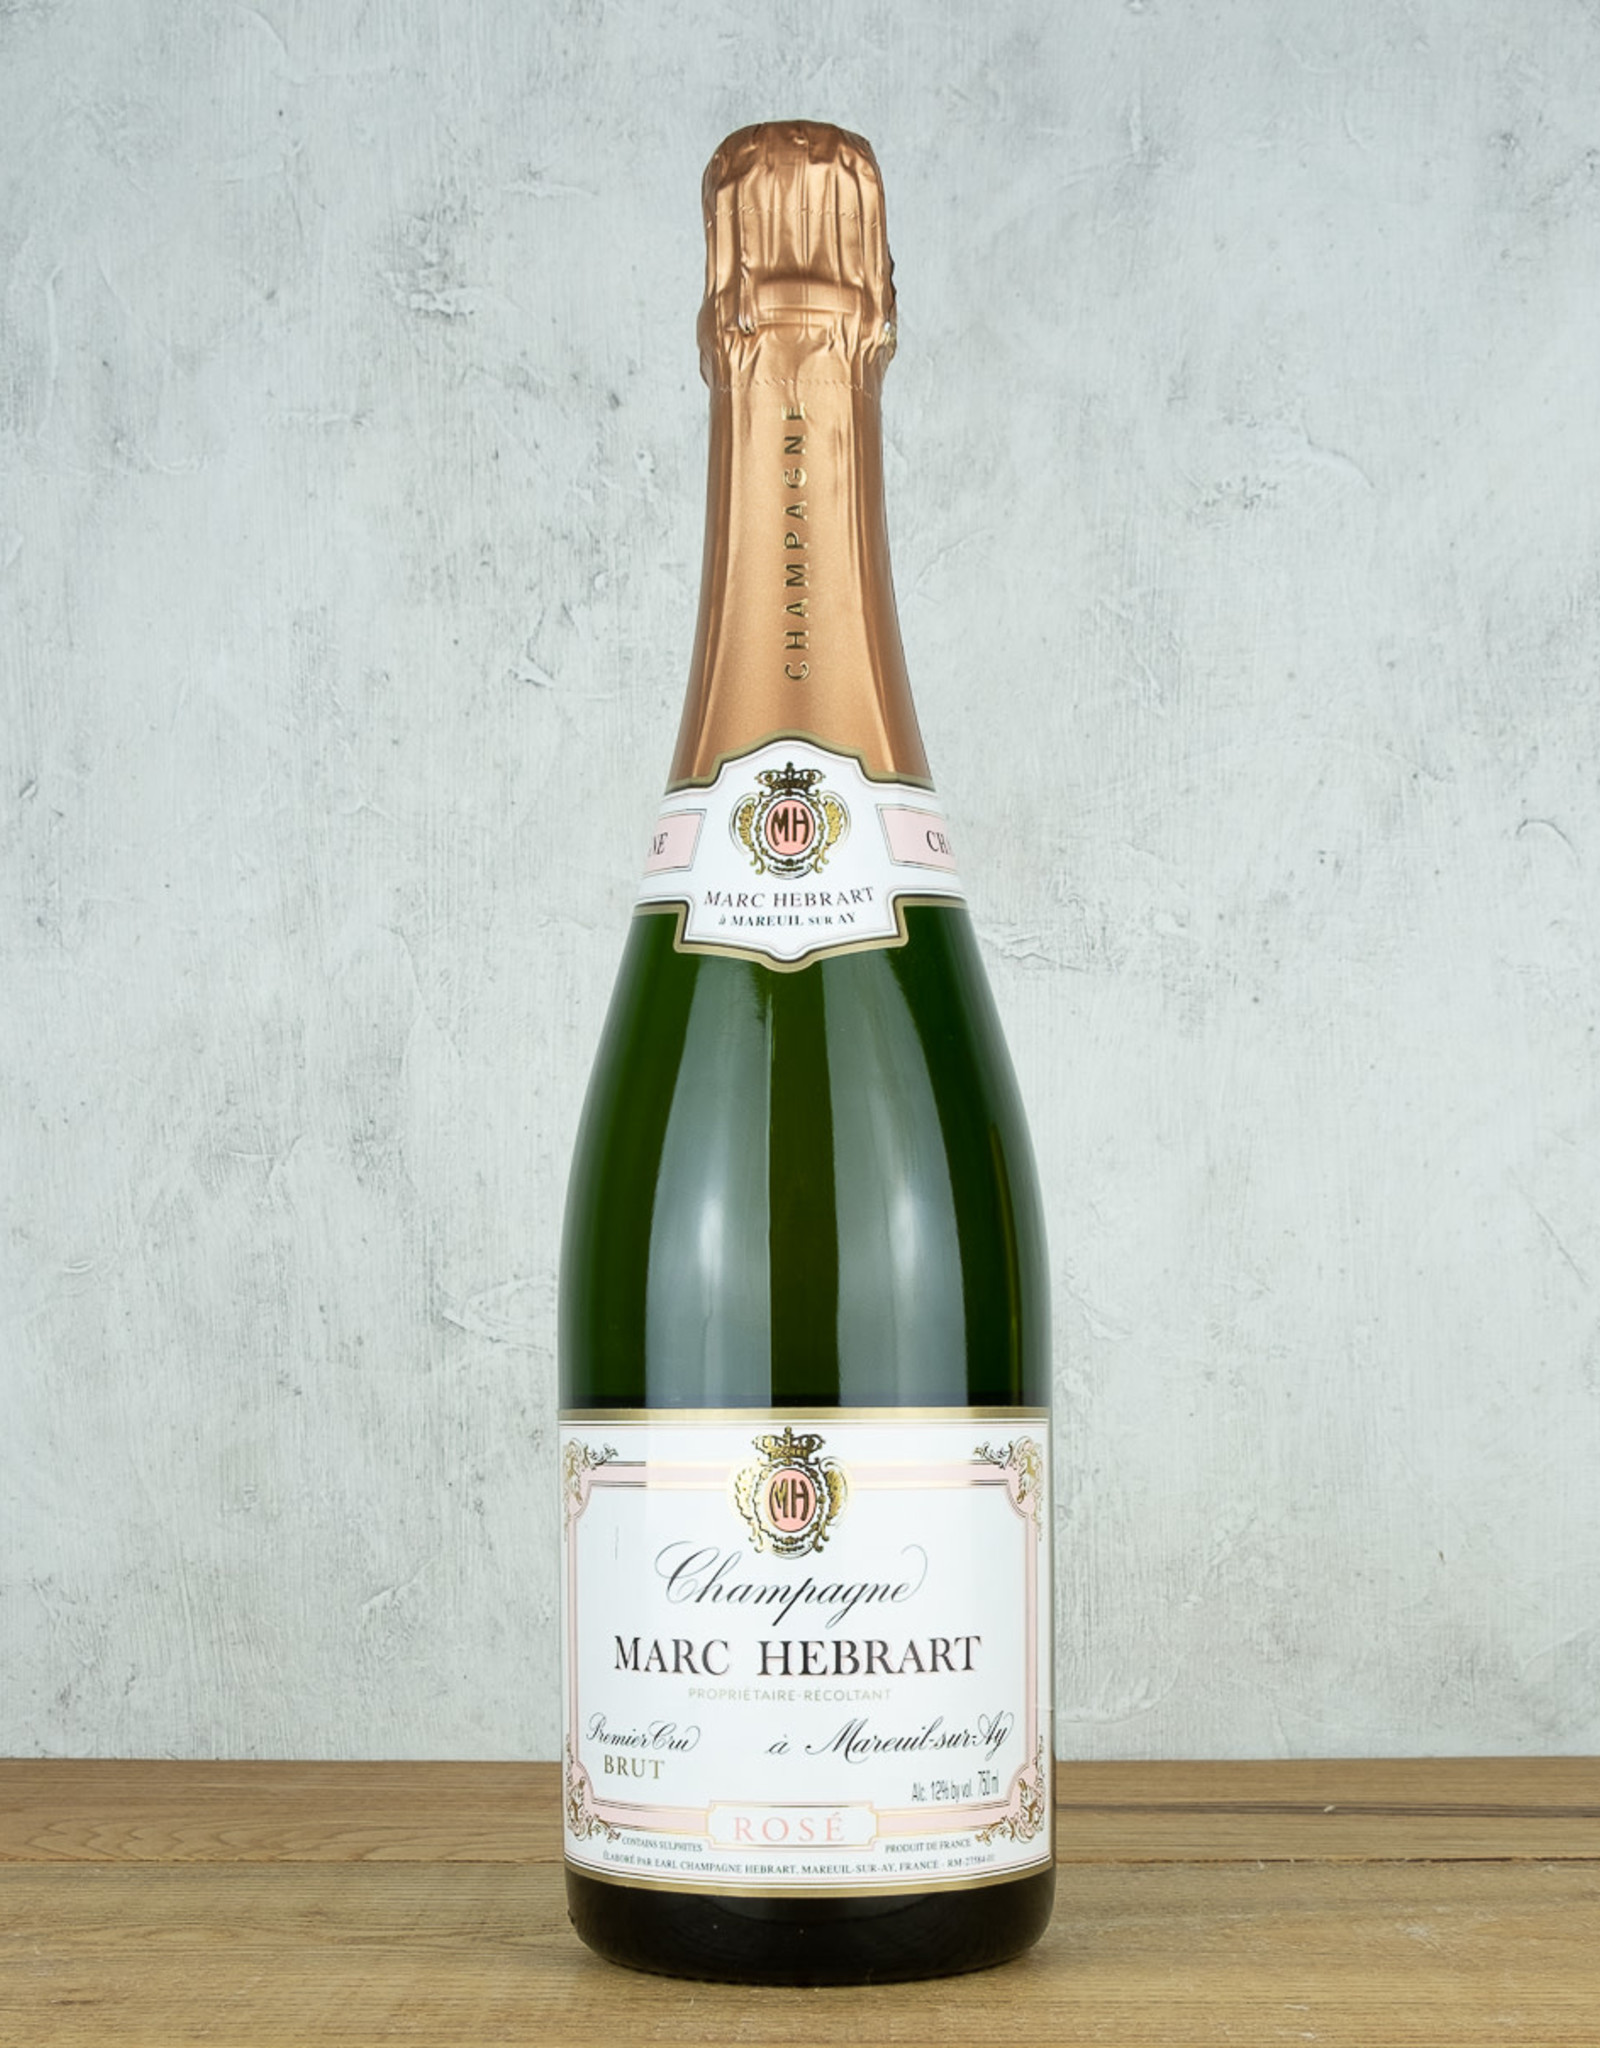 Champagne Marc Hebrart Brut Rose